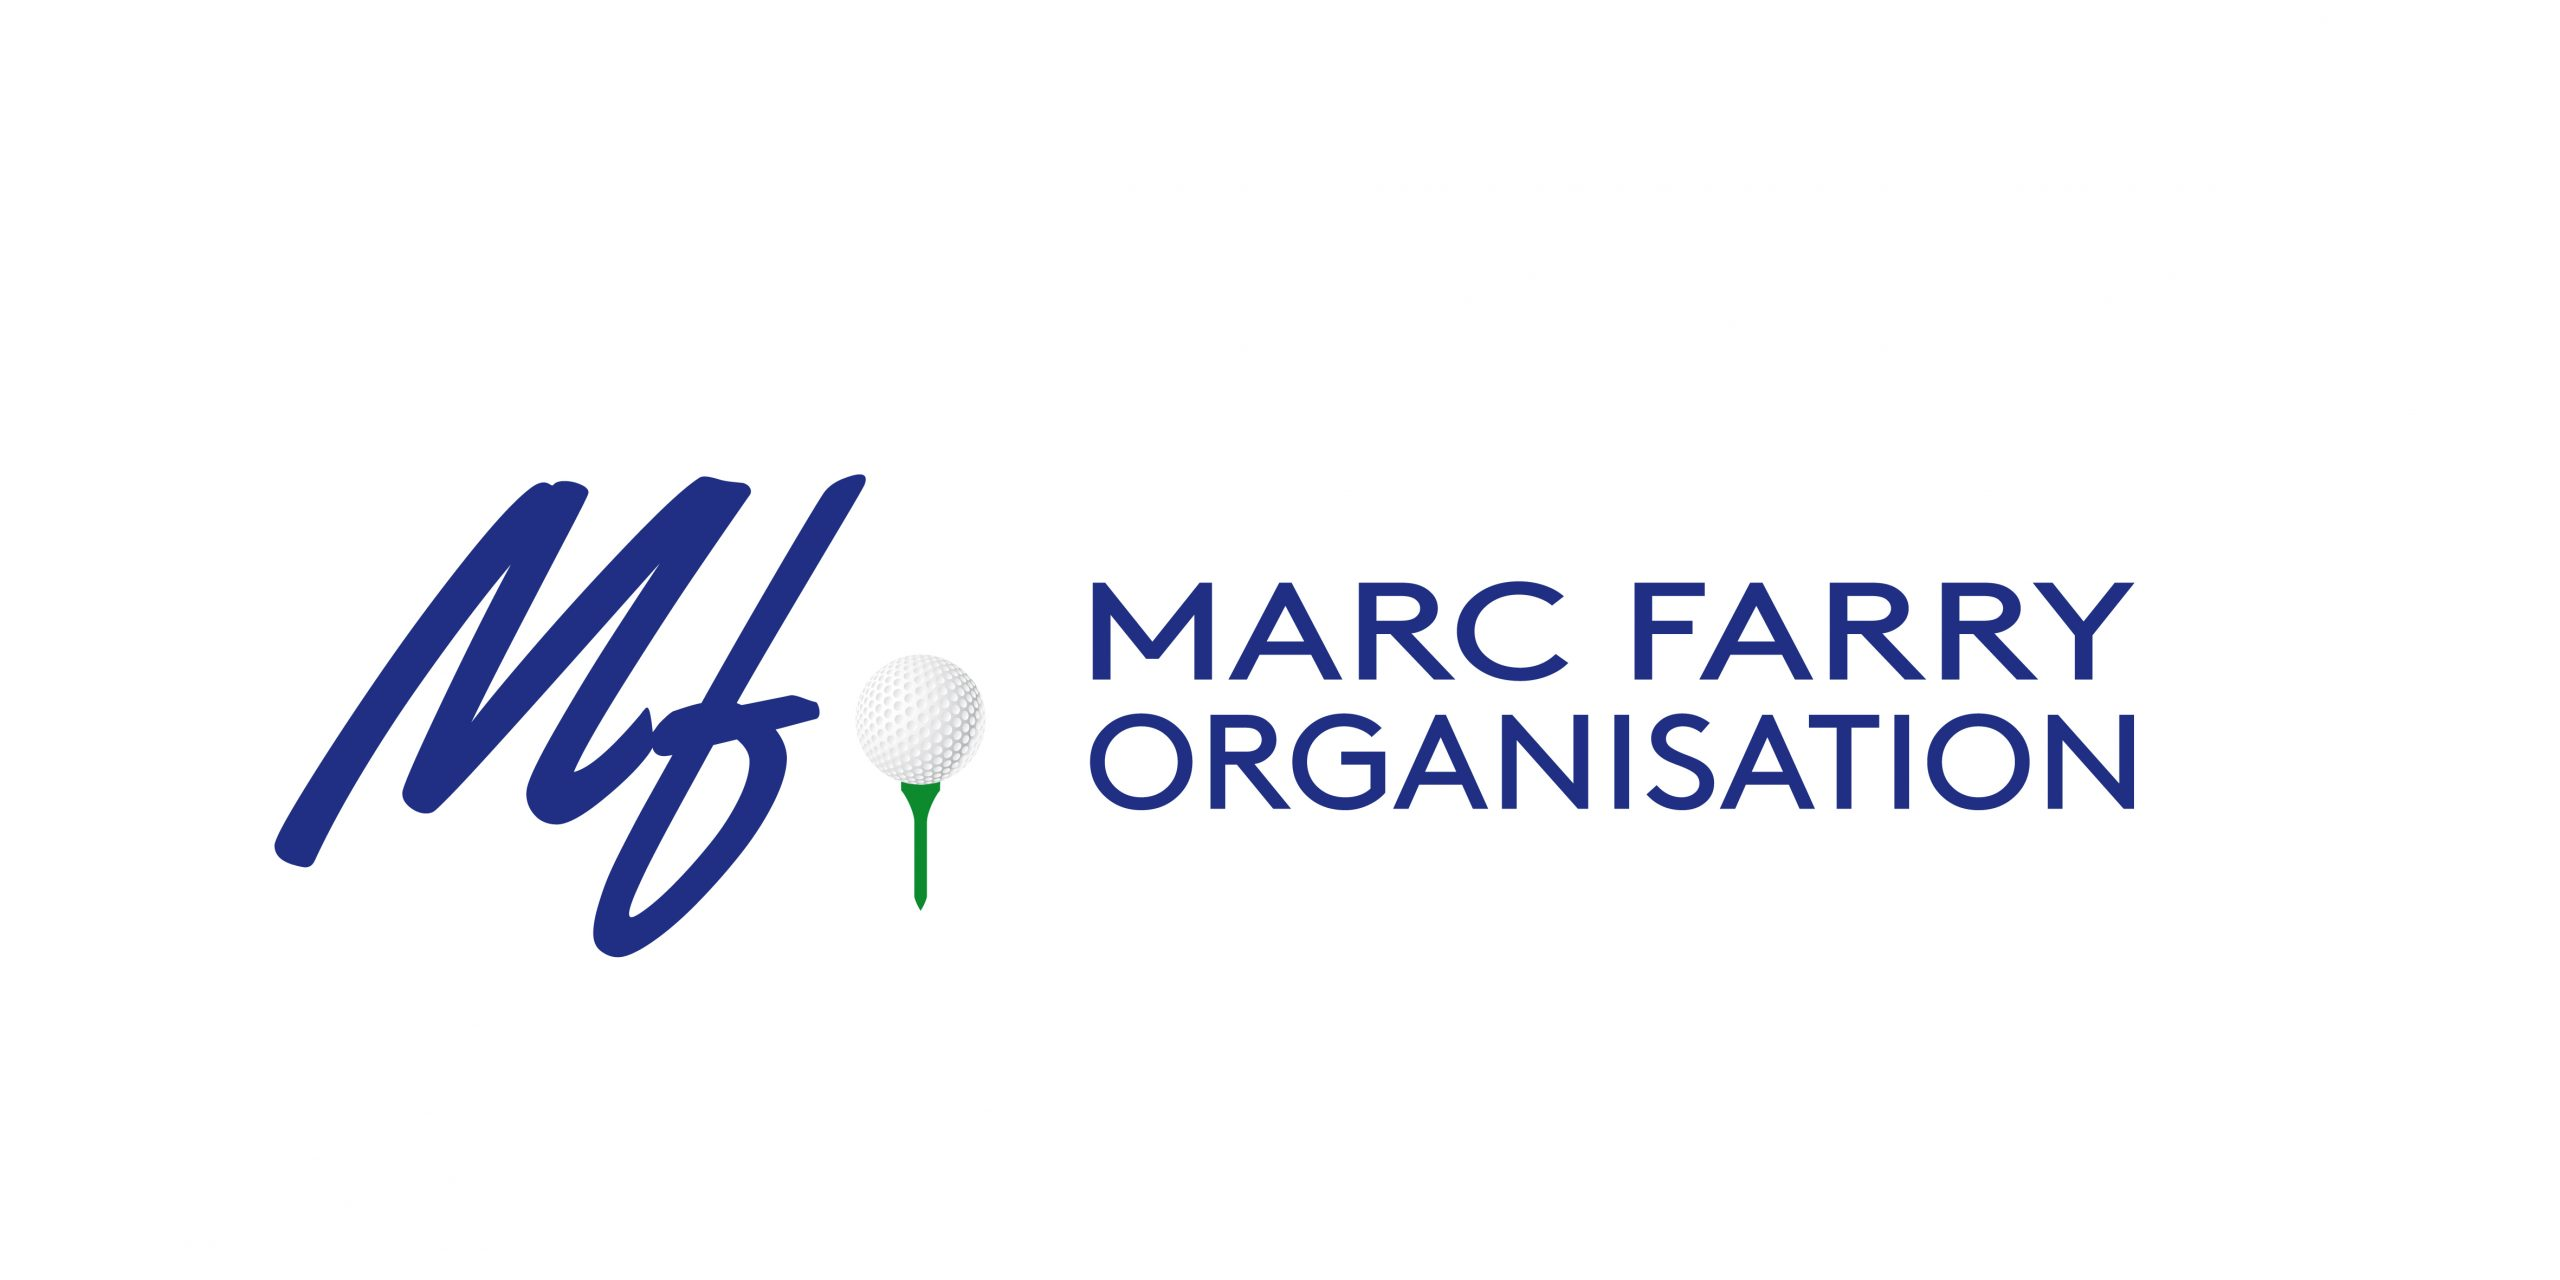 Marc Farry Organisation